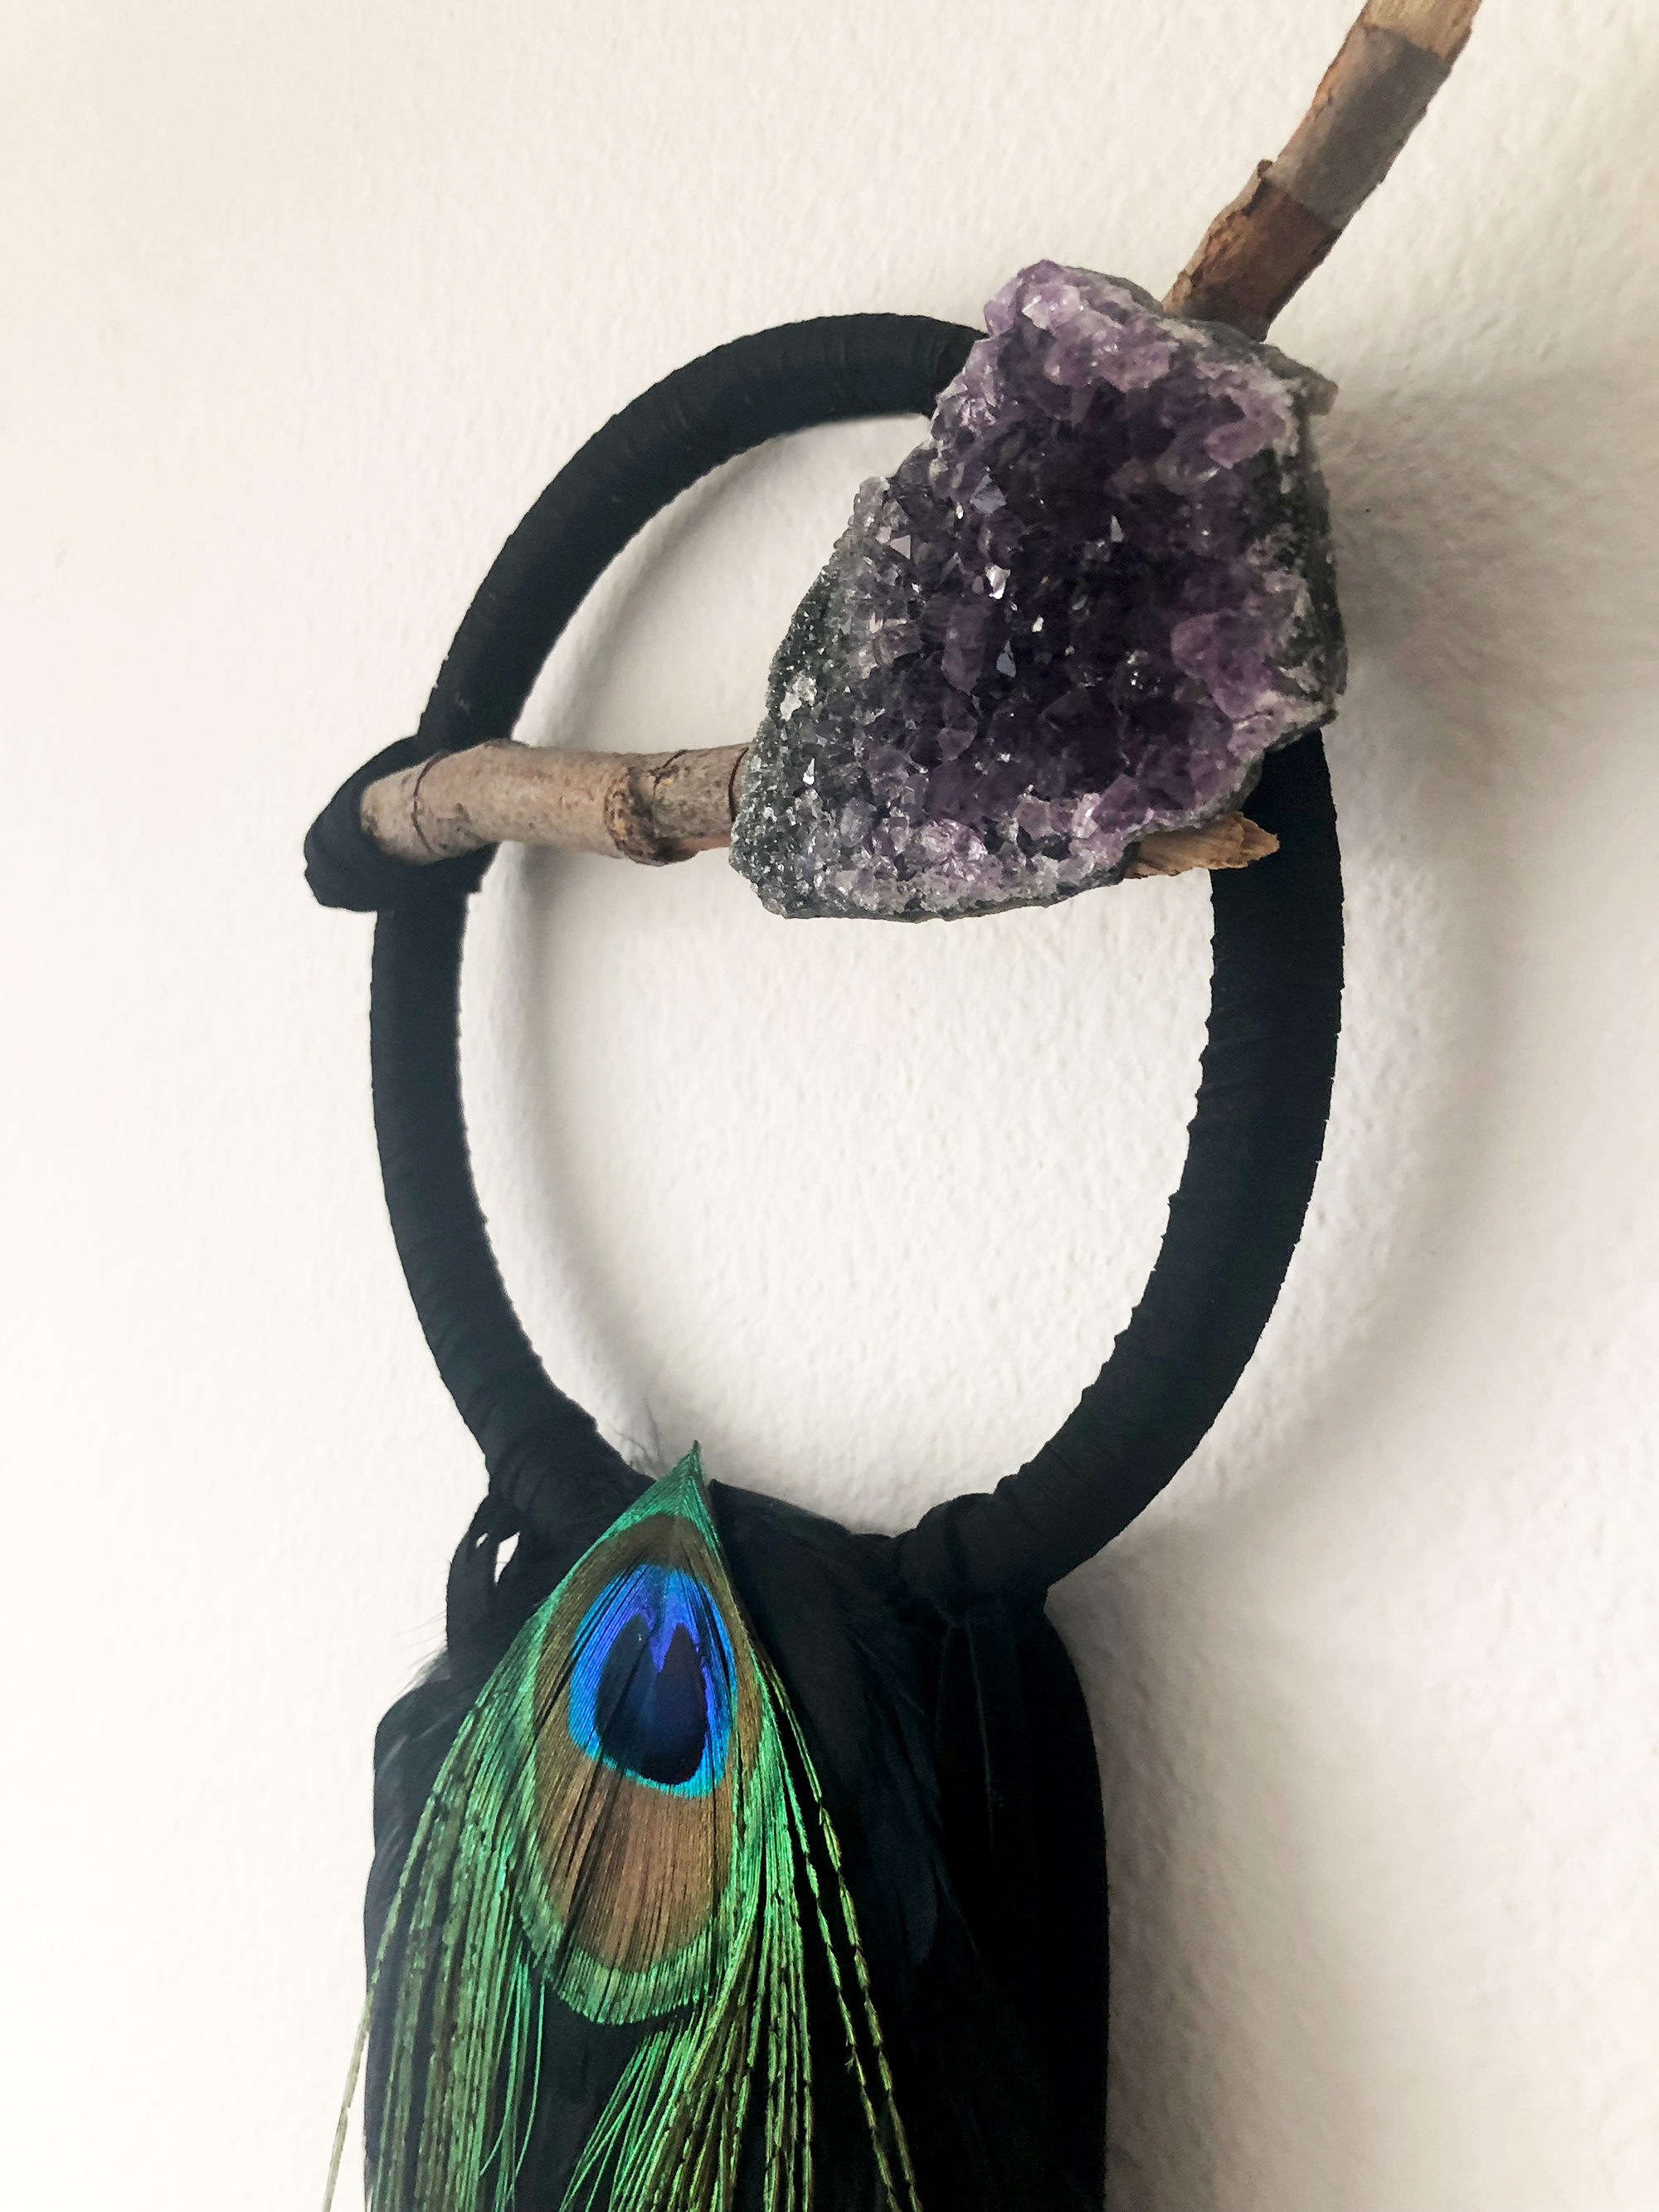 Custom made dreamcatcher with amethyst and peacock feather